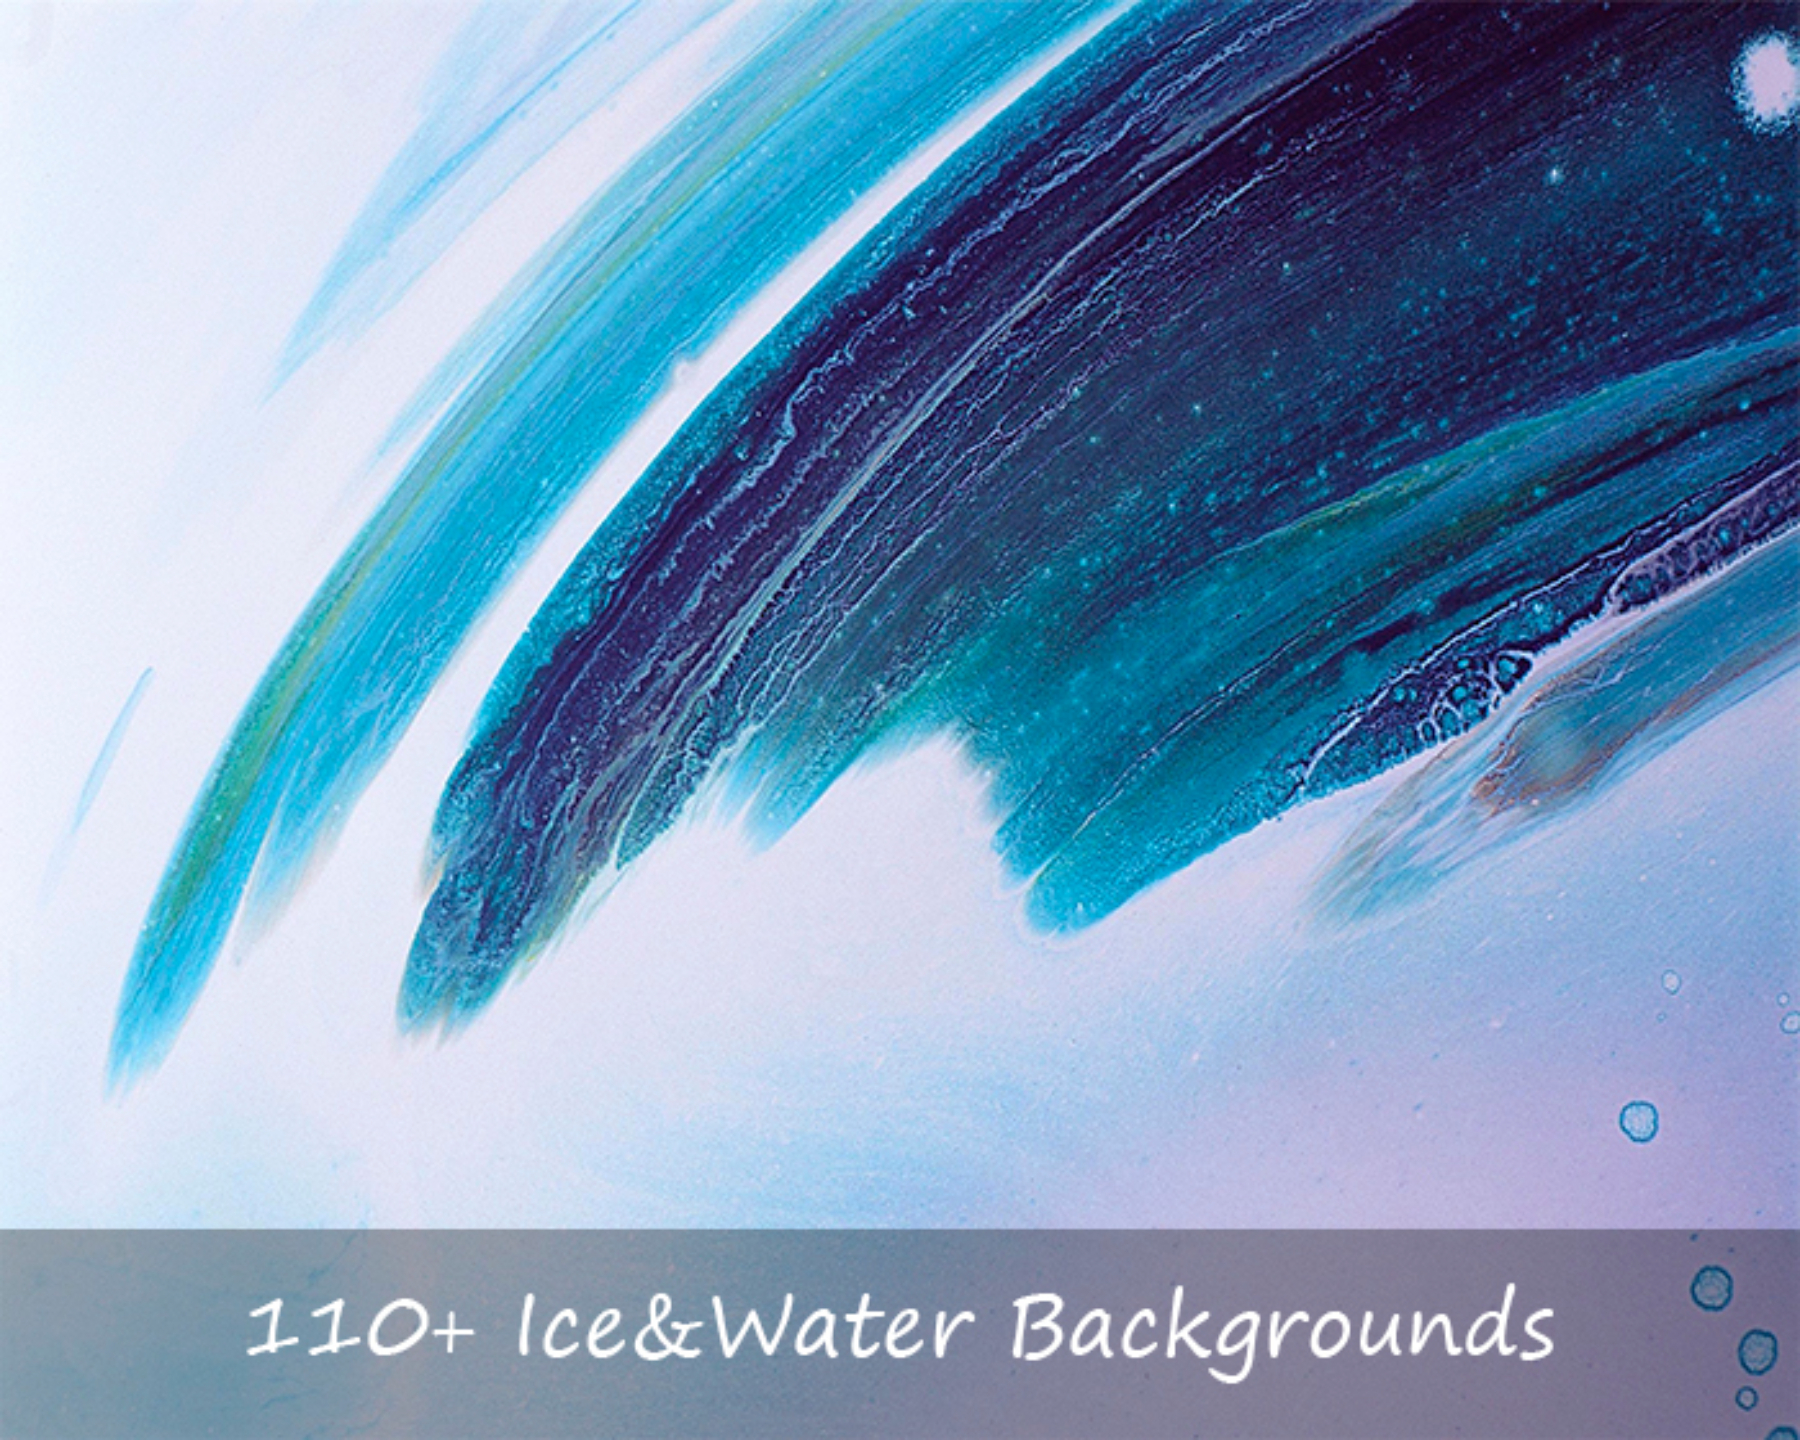 2000 High Resolution Backgrounds example image 9